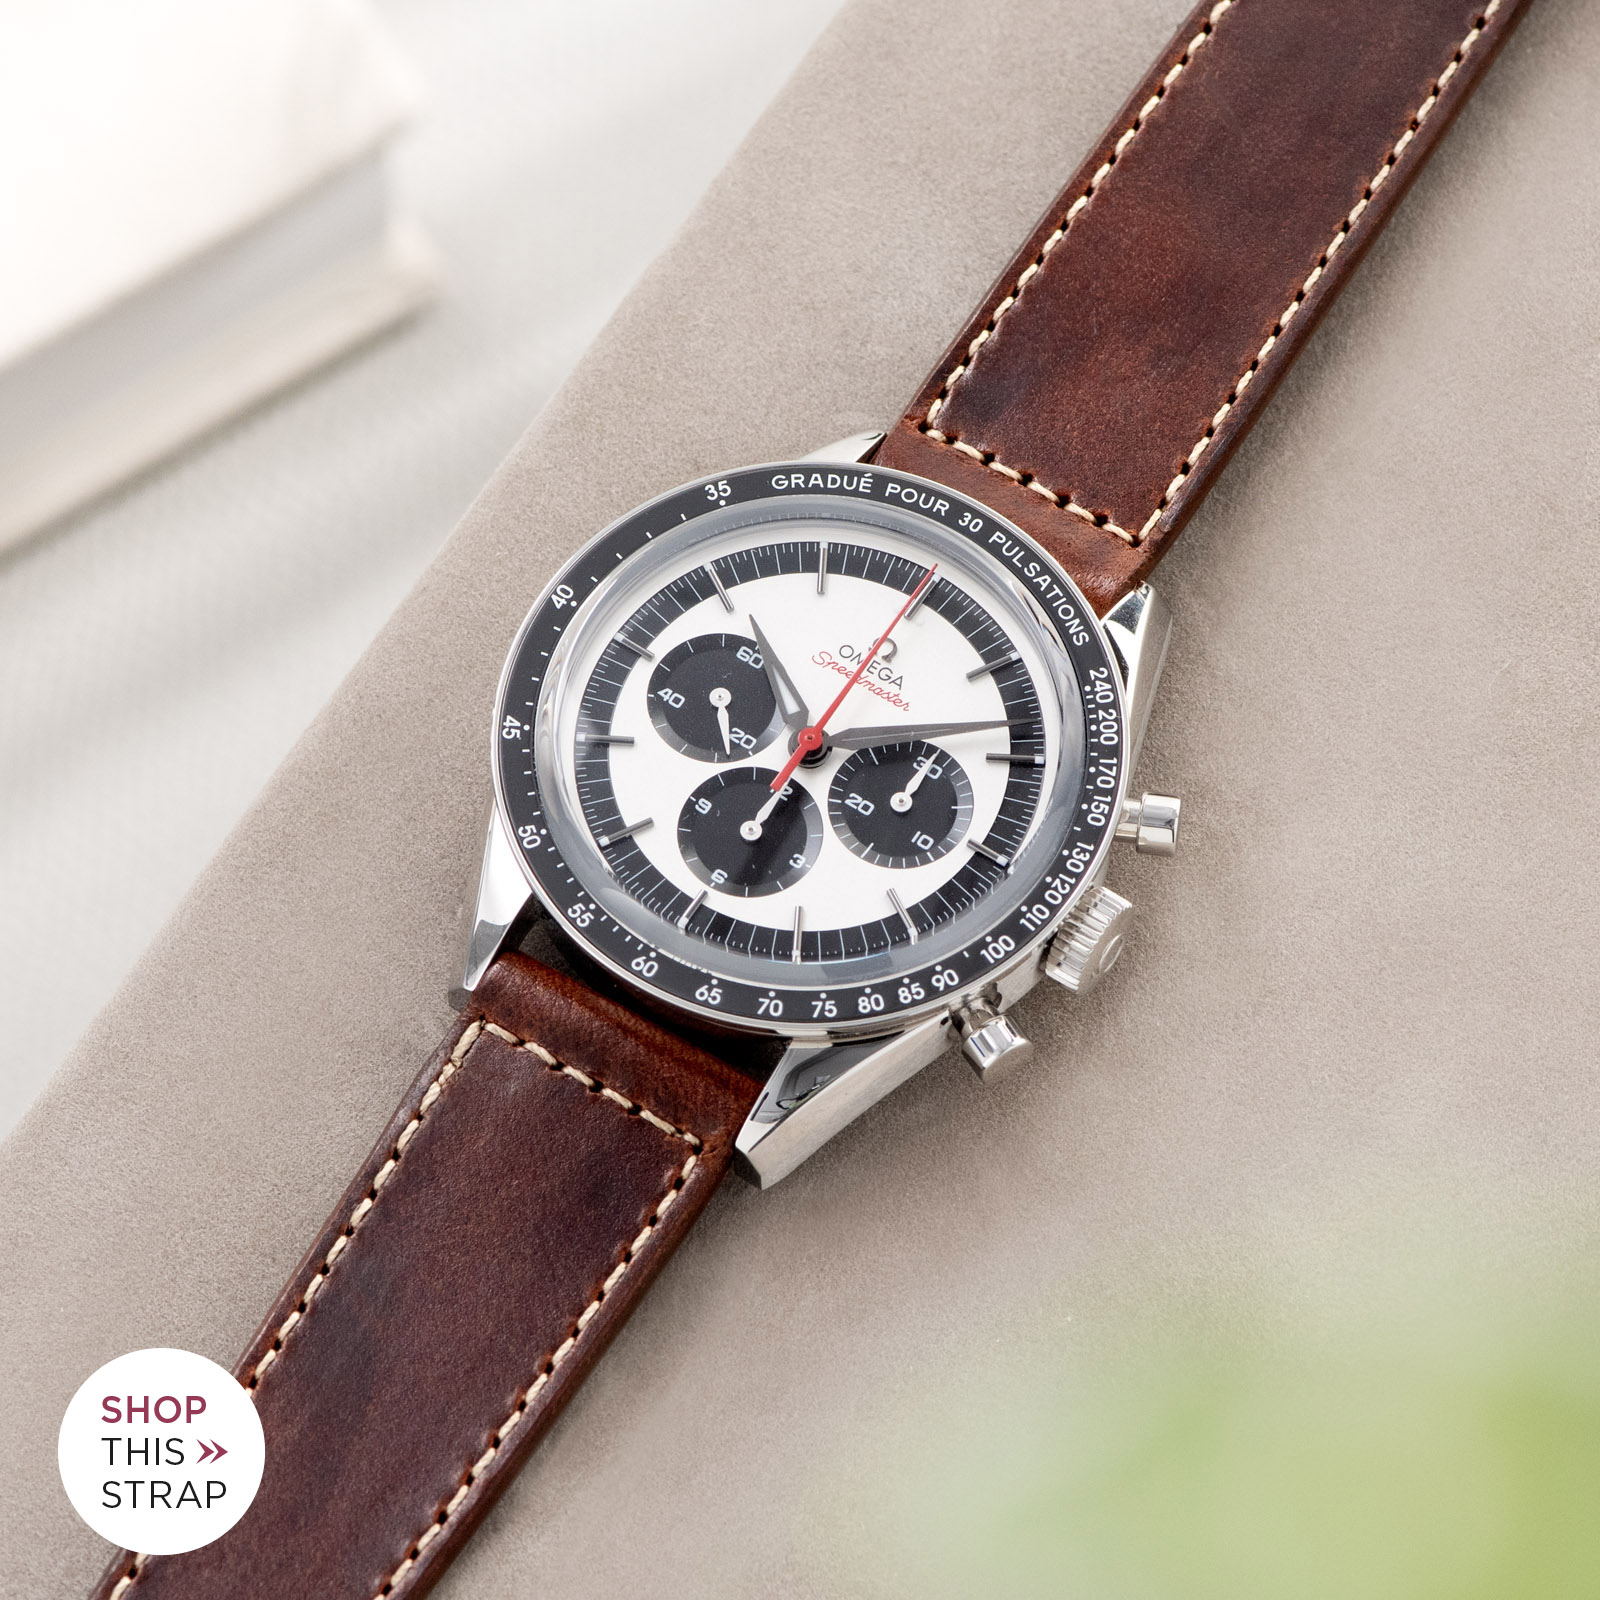 Bulang and Sons_Strap Guide_Omega Speedmaster 2998_Siena Brown Boxed Stitch Leather Watch Strap